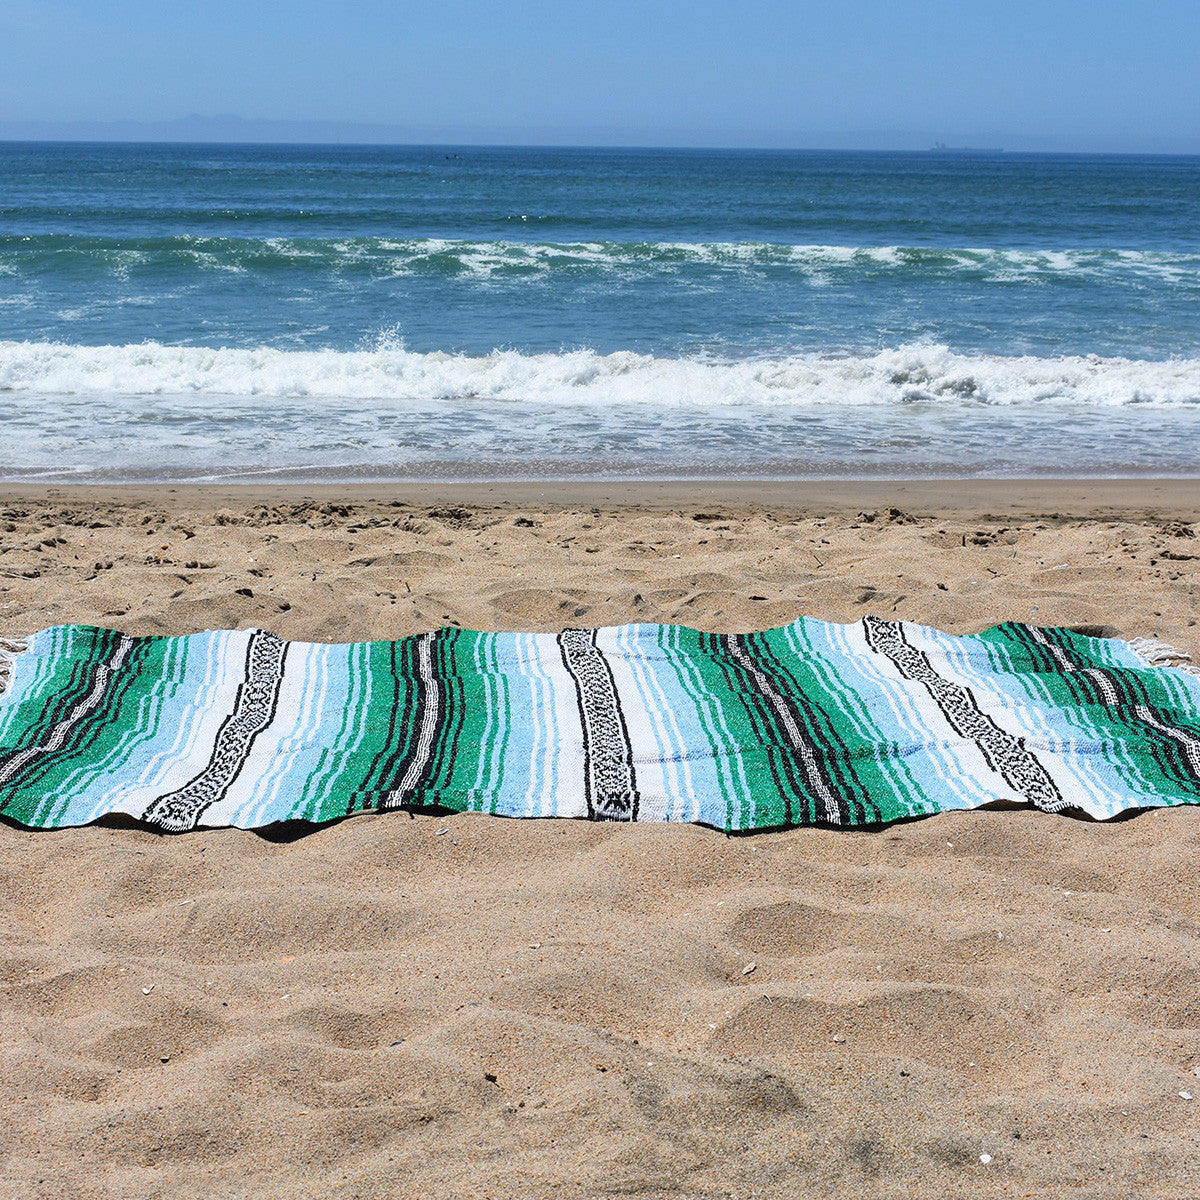 Relax on the beach all summer long with the laid back style of the Mountain High Bohemian Fiesta Blanket.